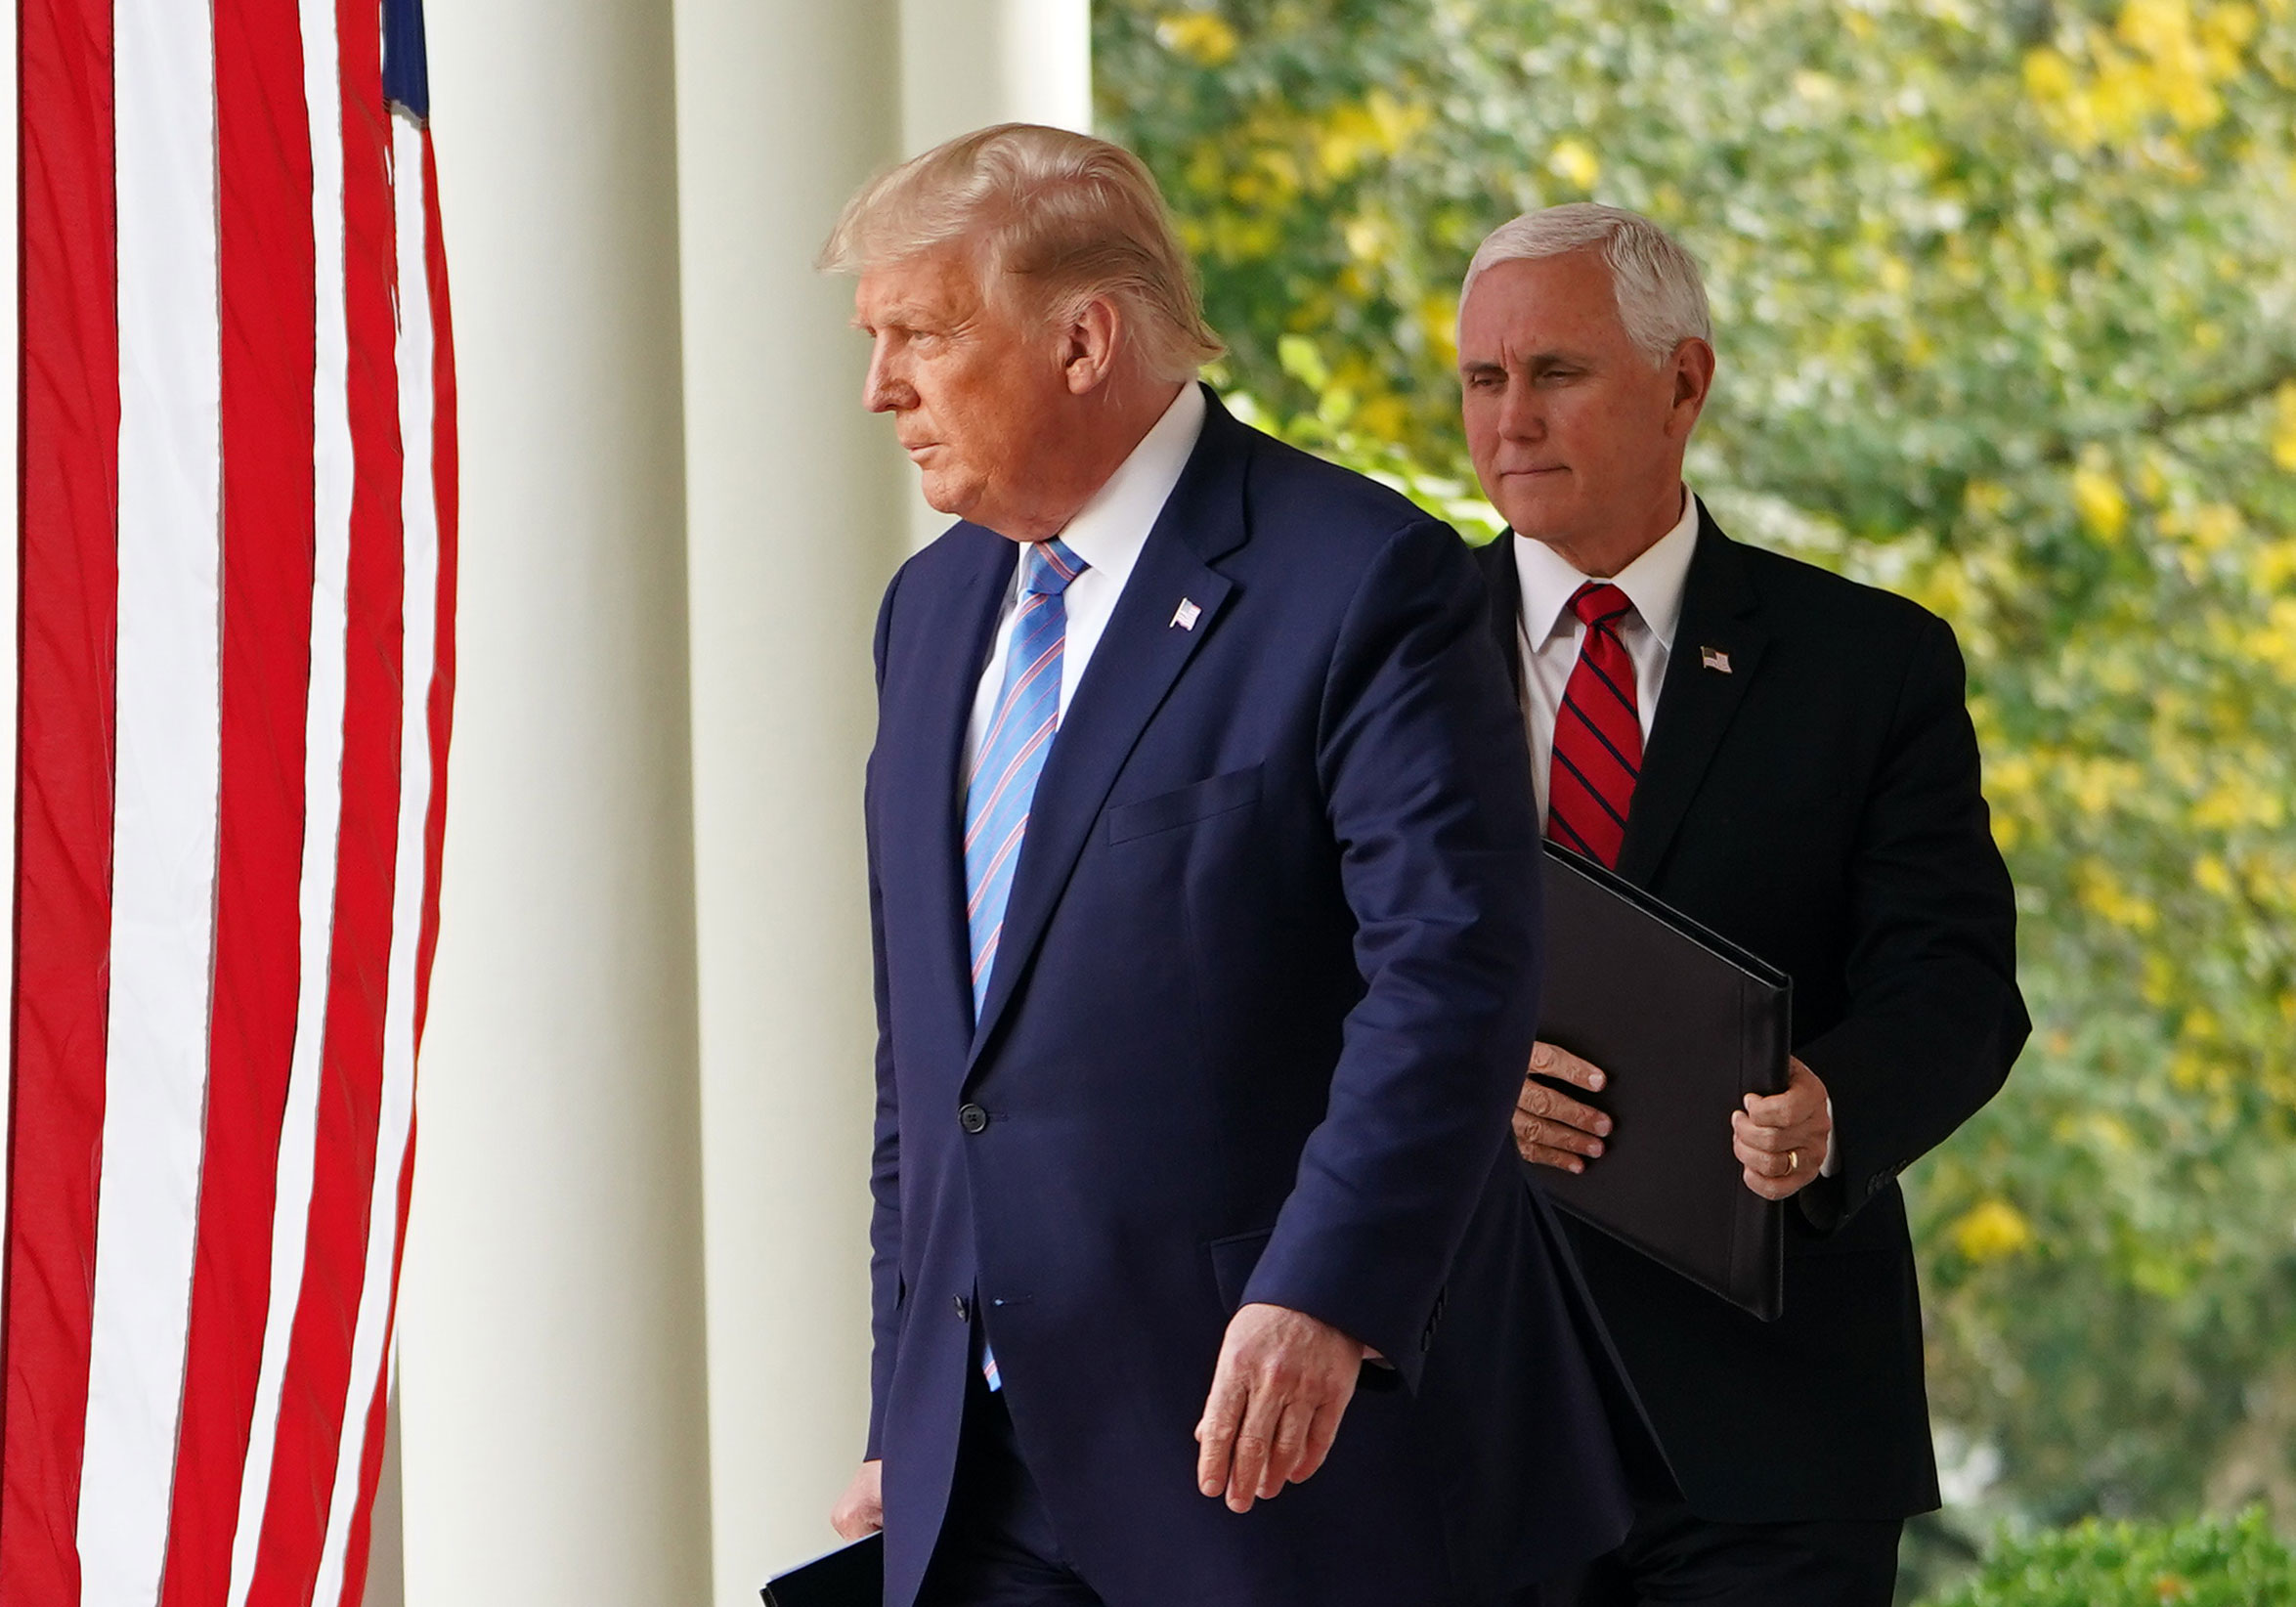 President Donald Trump and Vice President Mike Pence arrive to speak on Covid-19 testing in the Rose Garden of the White House on September 28.